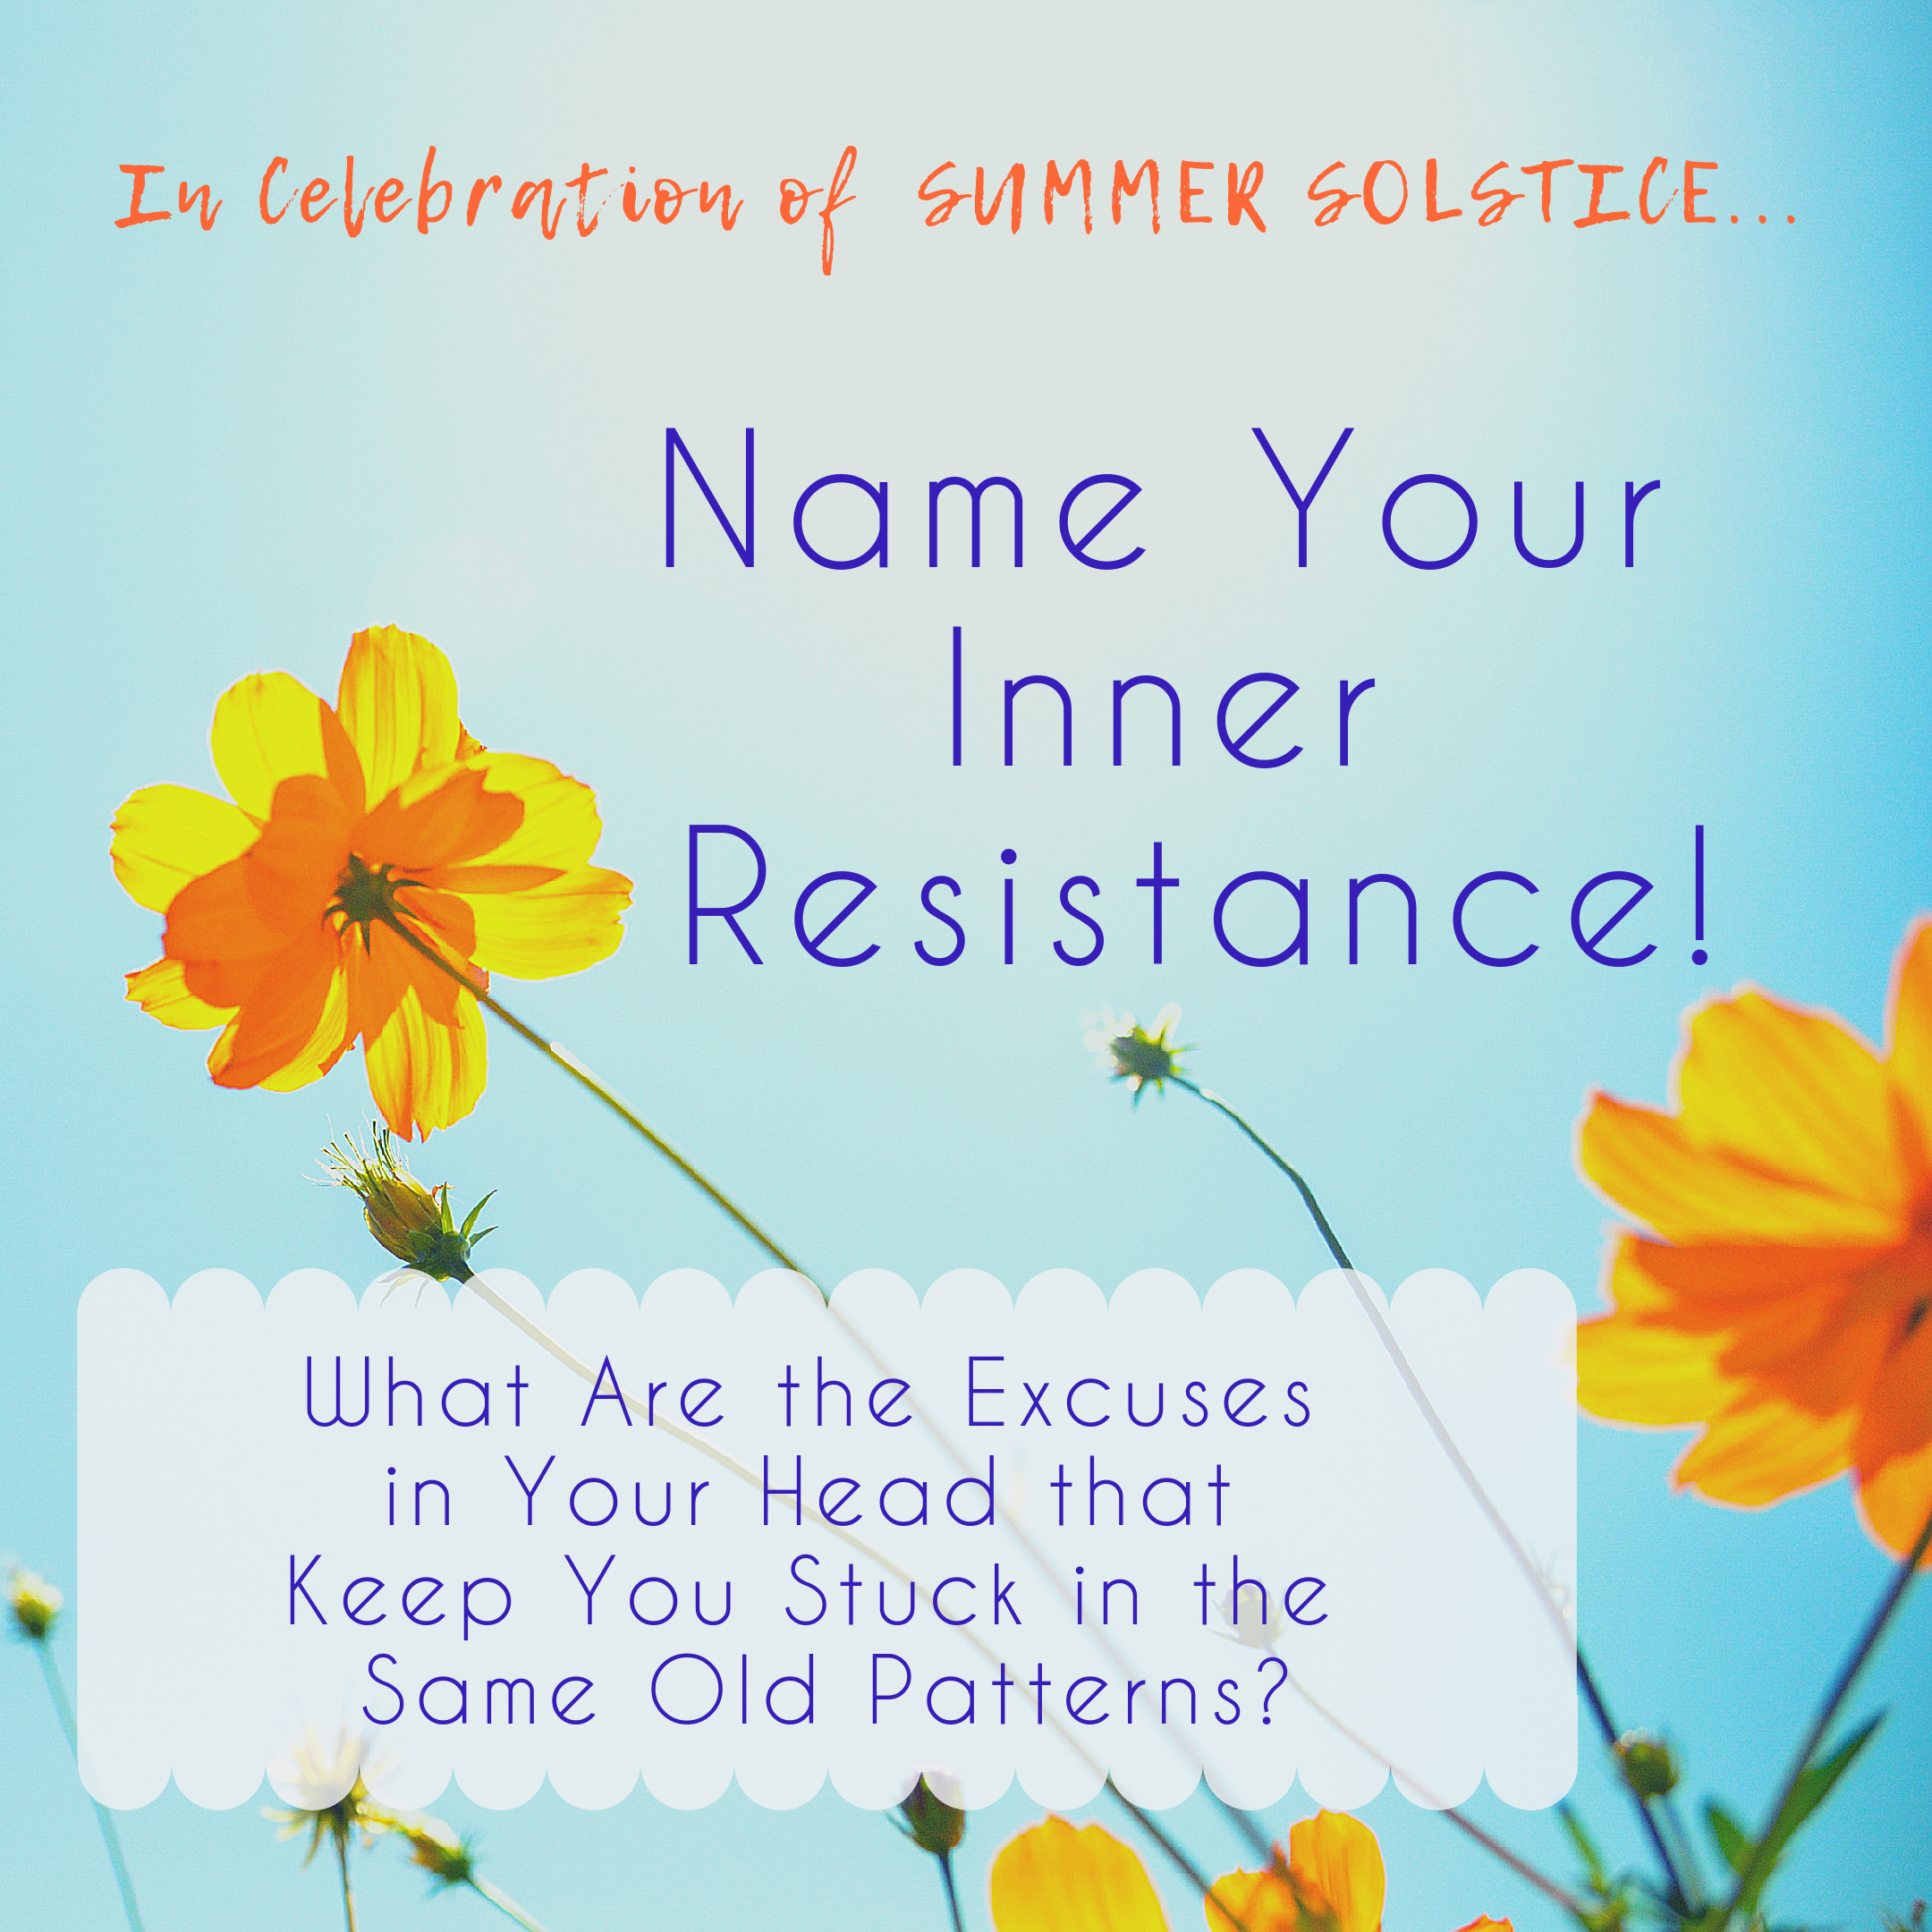 Name Your Inner Resistance!